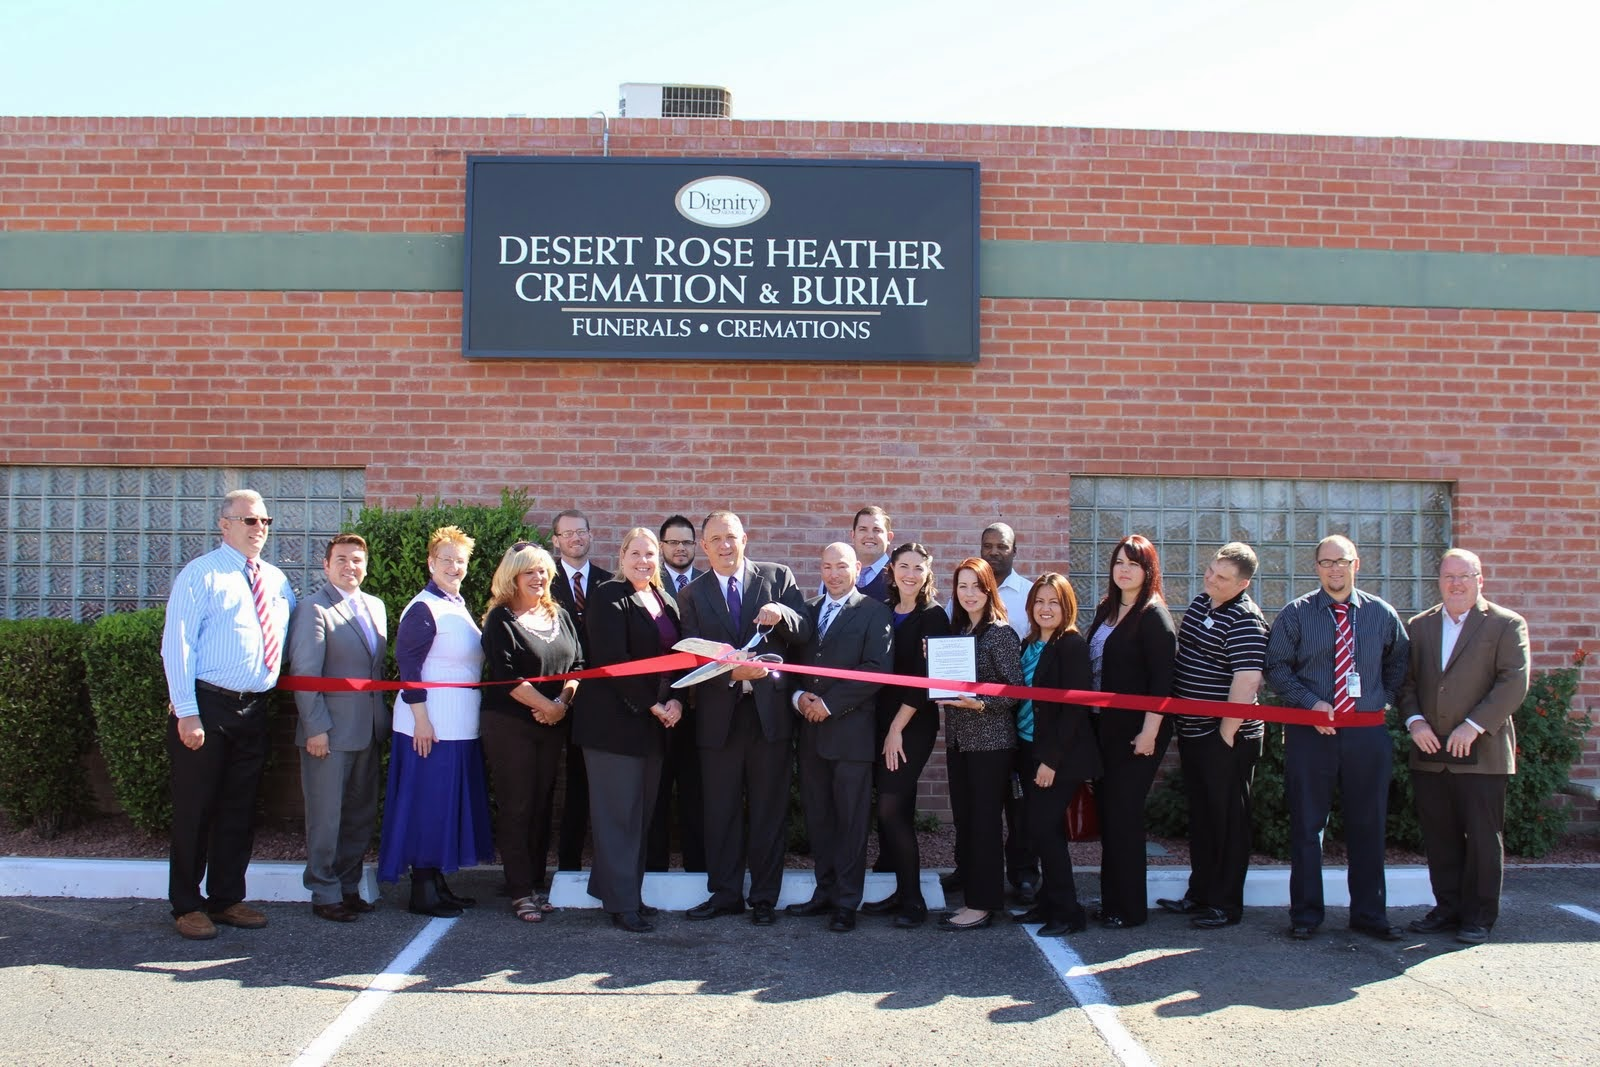 Ribbon Cutting Ceremony celebrating the joining of two Dignity Memorial® funeral homes committed to the highest standards of service. Desert Rose Cremation & Burial and Heather Mortuary & Chapel will continue the proud tradition of serving the community with compassionate care, respect and guaranteed satisfaction.